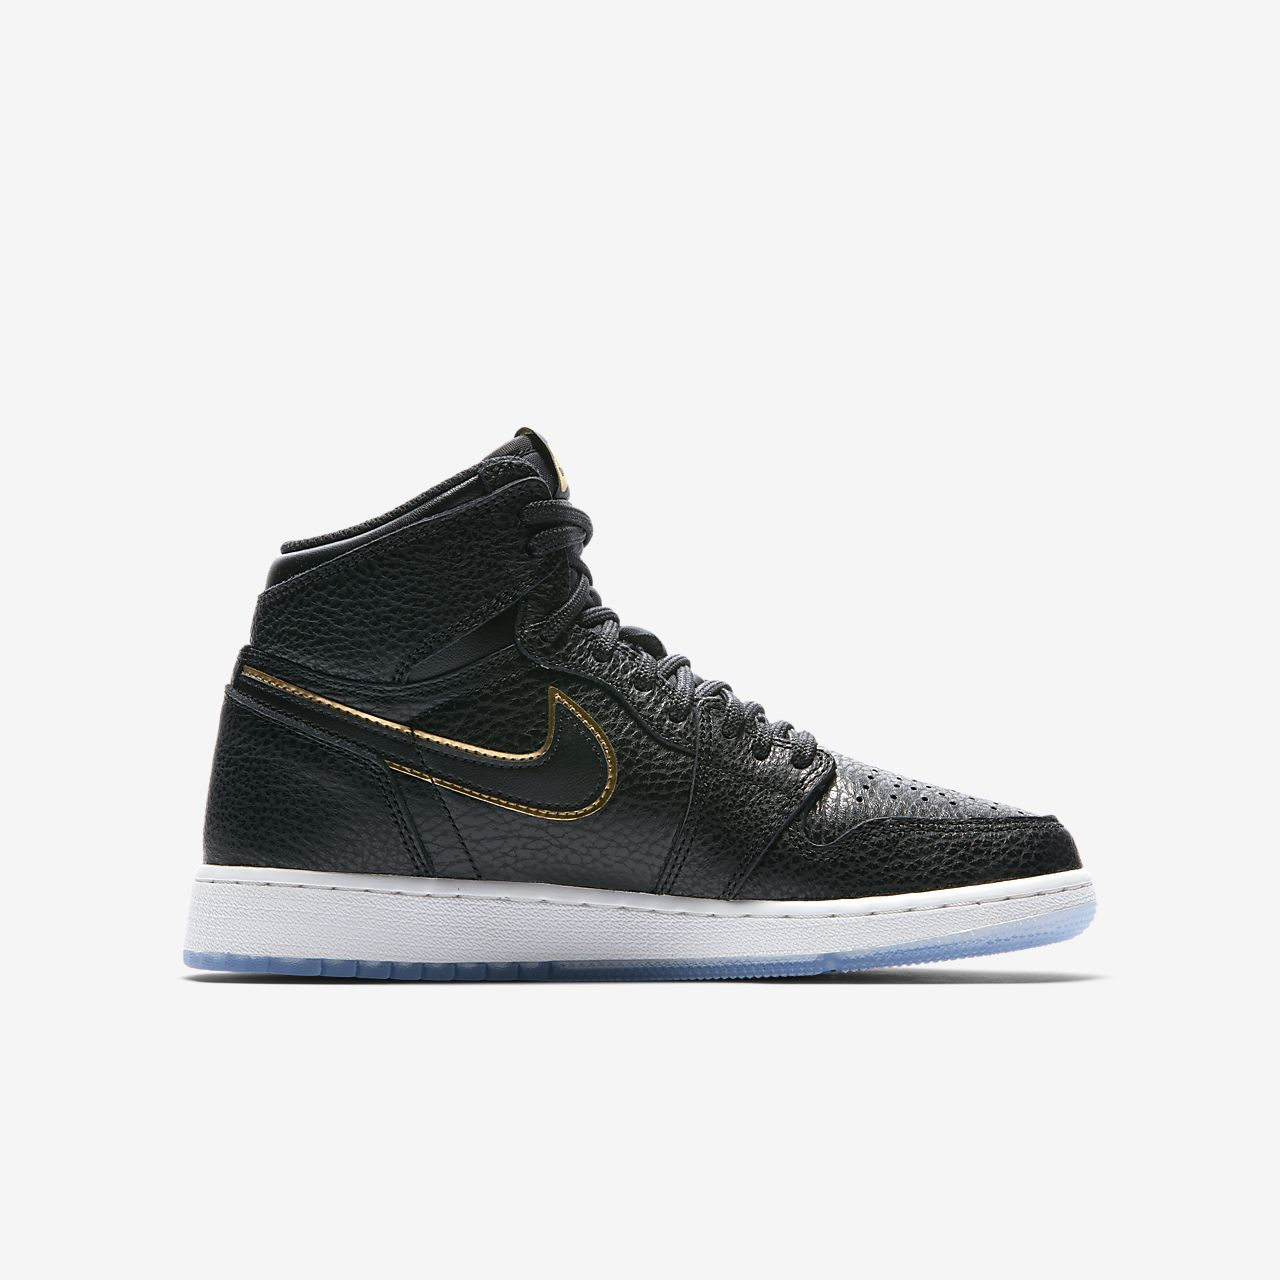 air jordan 1 retro high og nz